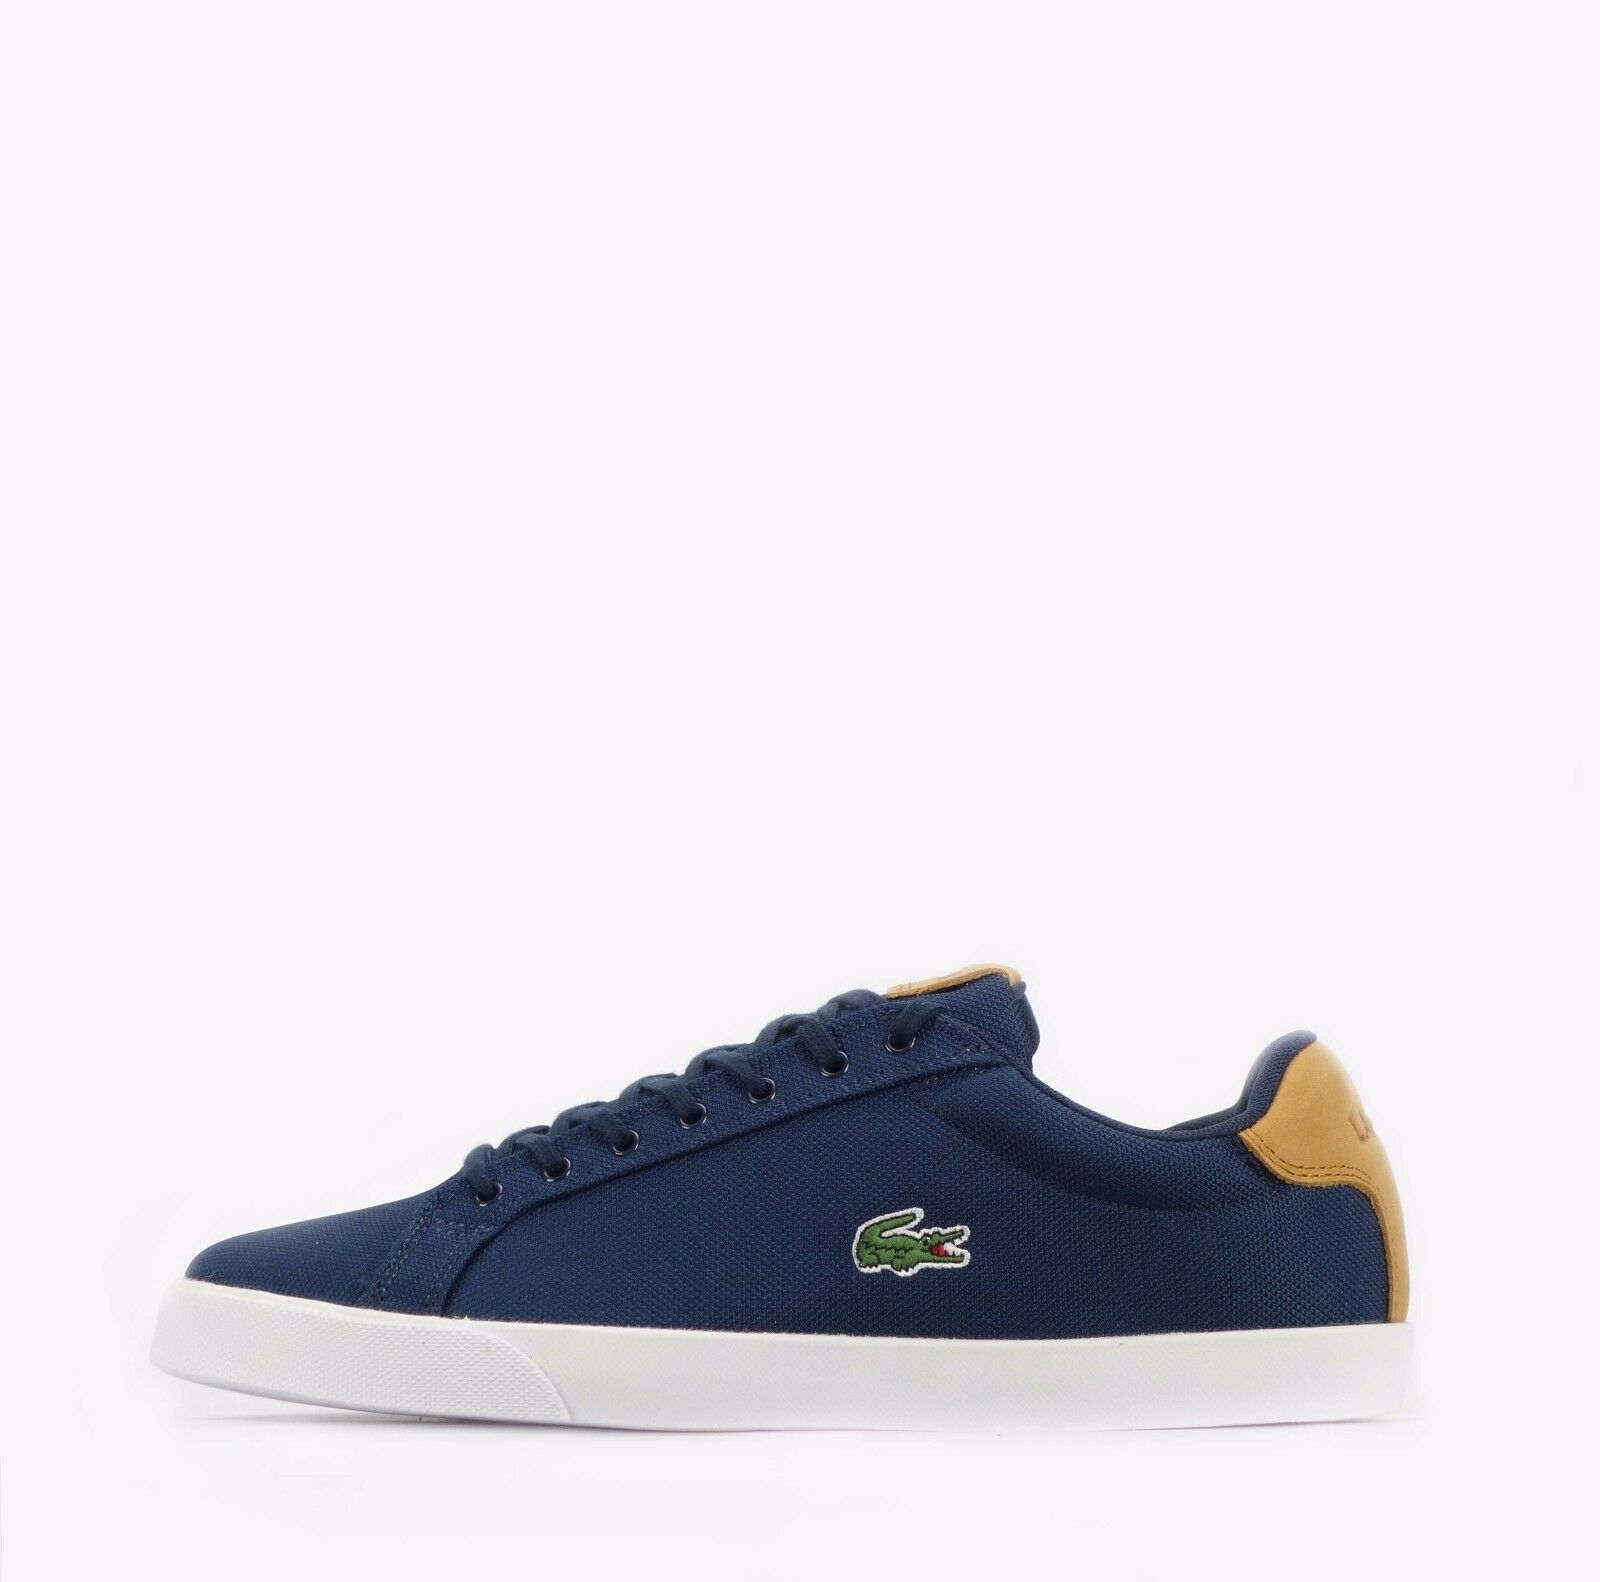 Lacoste Graduate Vulcanized  Mens Schuhes in Navy